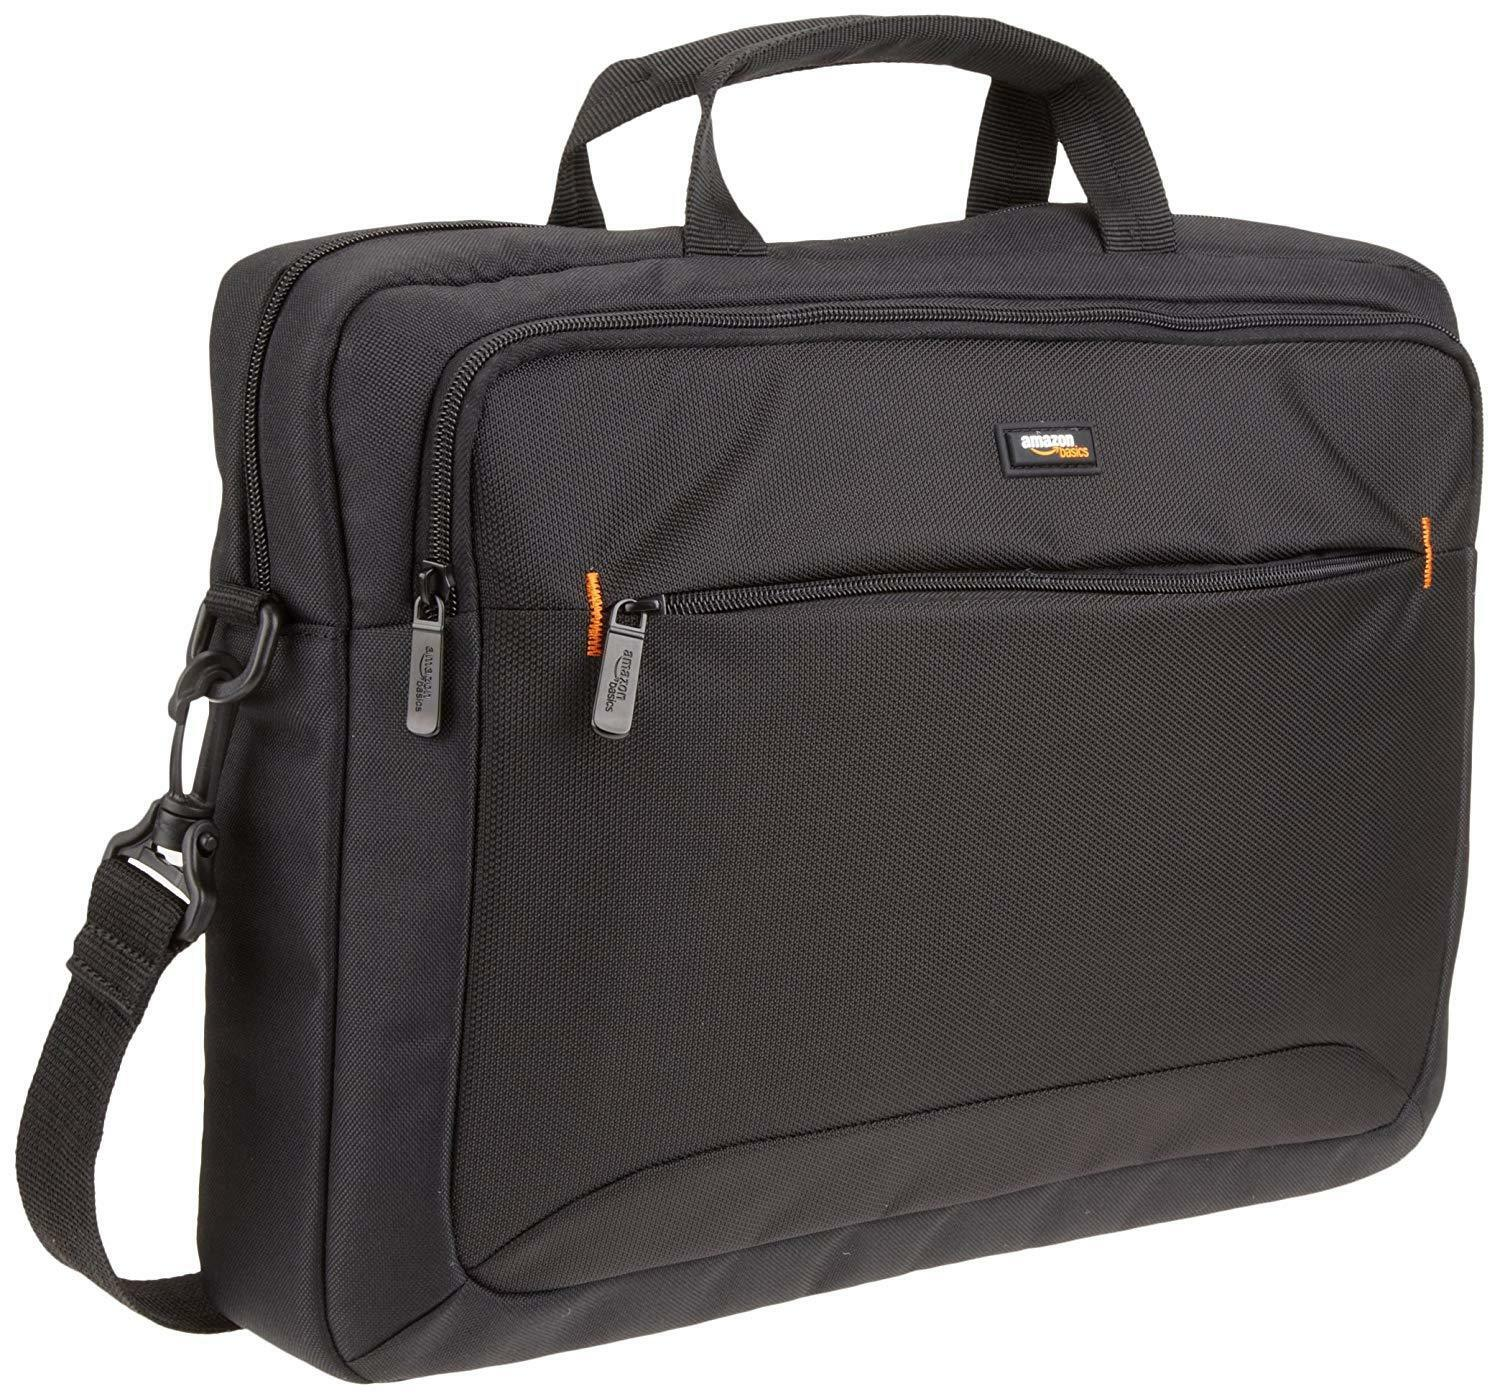 BRAND NEW AmazonBasics 11.6-Inch Laptop and Tablet Bag FREE